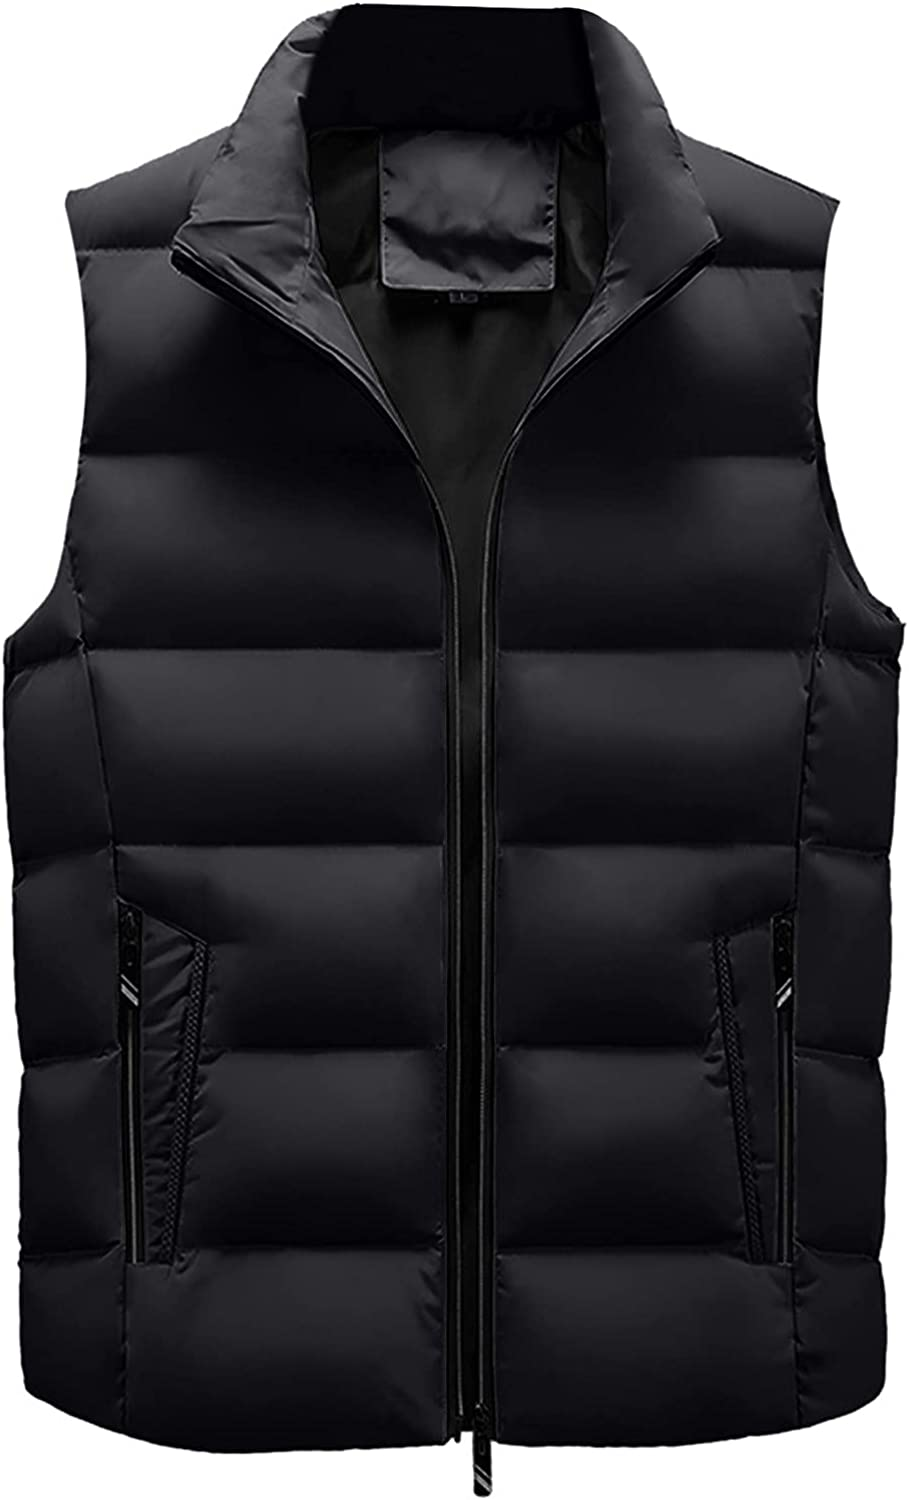 Men's Autumn Winter Fashion Clearance Jacket Online limited product C Solid Choice Puffer Vest